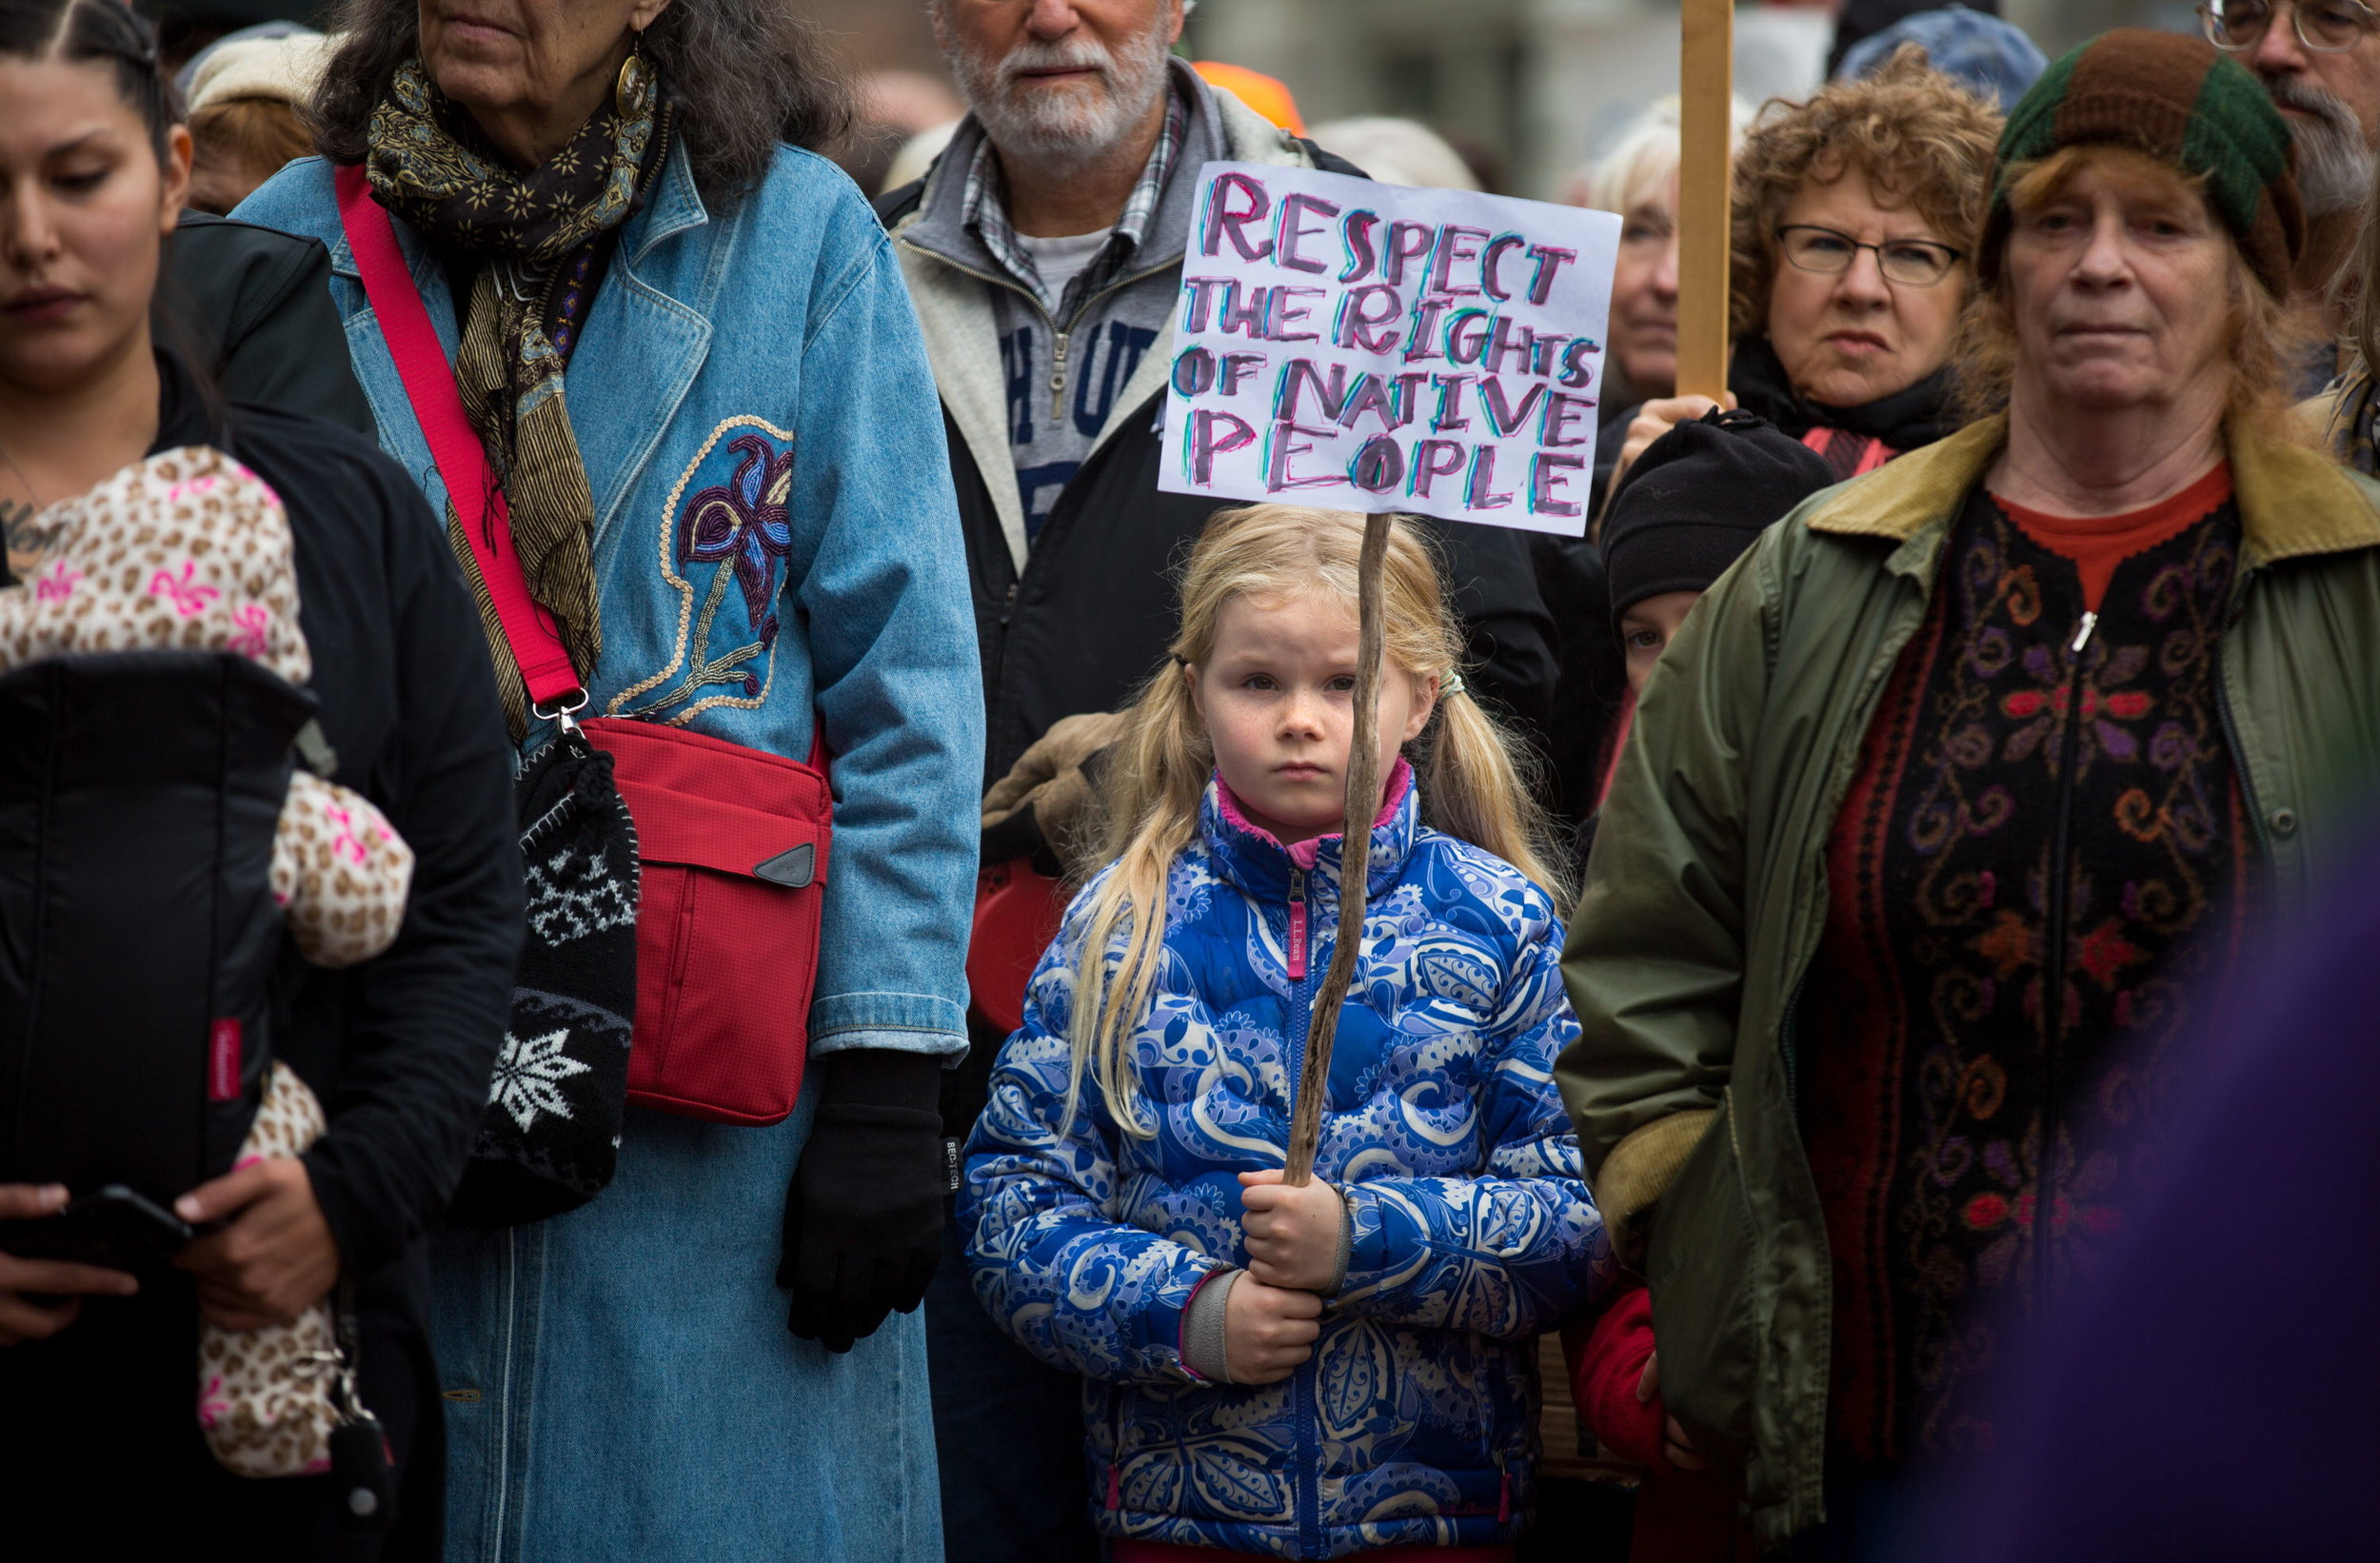 """BANGOR, MAINE -- 11/15/16 -- Eva Beal, 8, of Ellsworth holds a sign she made herself during a Dakota Access Pipeline protest in West Market Square in Bangor on Tuesday afternoon. Over 100 protestors gathered as part of a national day of action to call for the permanent rejection of the Dakota Access Pipeline, currently under """"the threat of the Trump presidency,"""" and to stop violence against protestors by a """"militarized police,"""" according to protest organizers. The event spanned all 50 states and included thousands of protestors and dozens of social justice and environmental groups. (Micky Bedell   BDN)"""